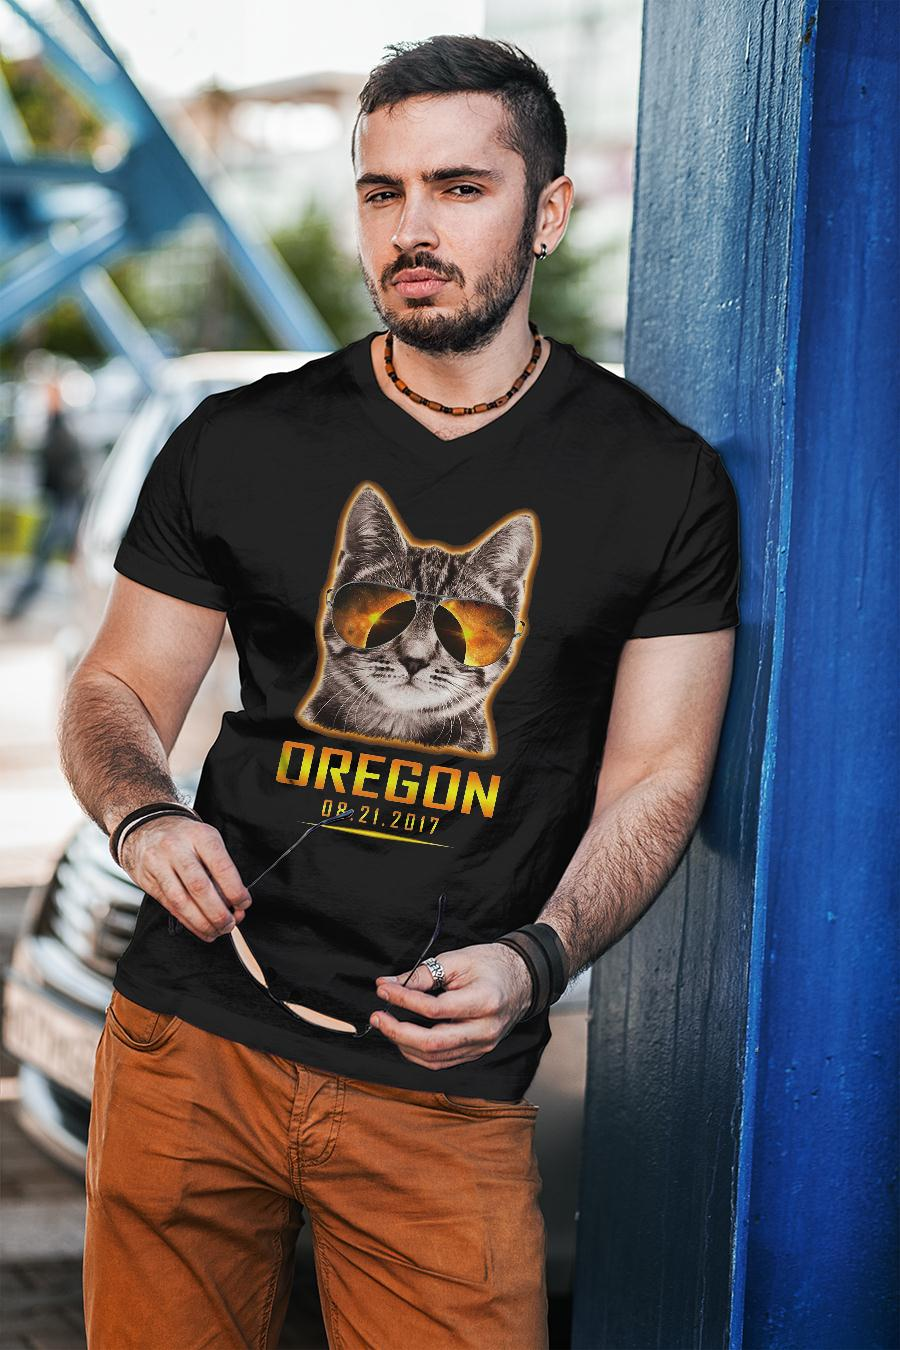 Cat is watching Oregon total solar eclipse 2017 shirt unisex